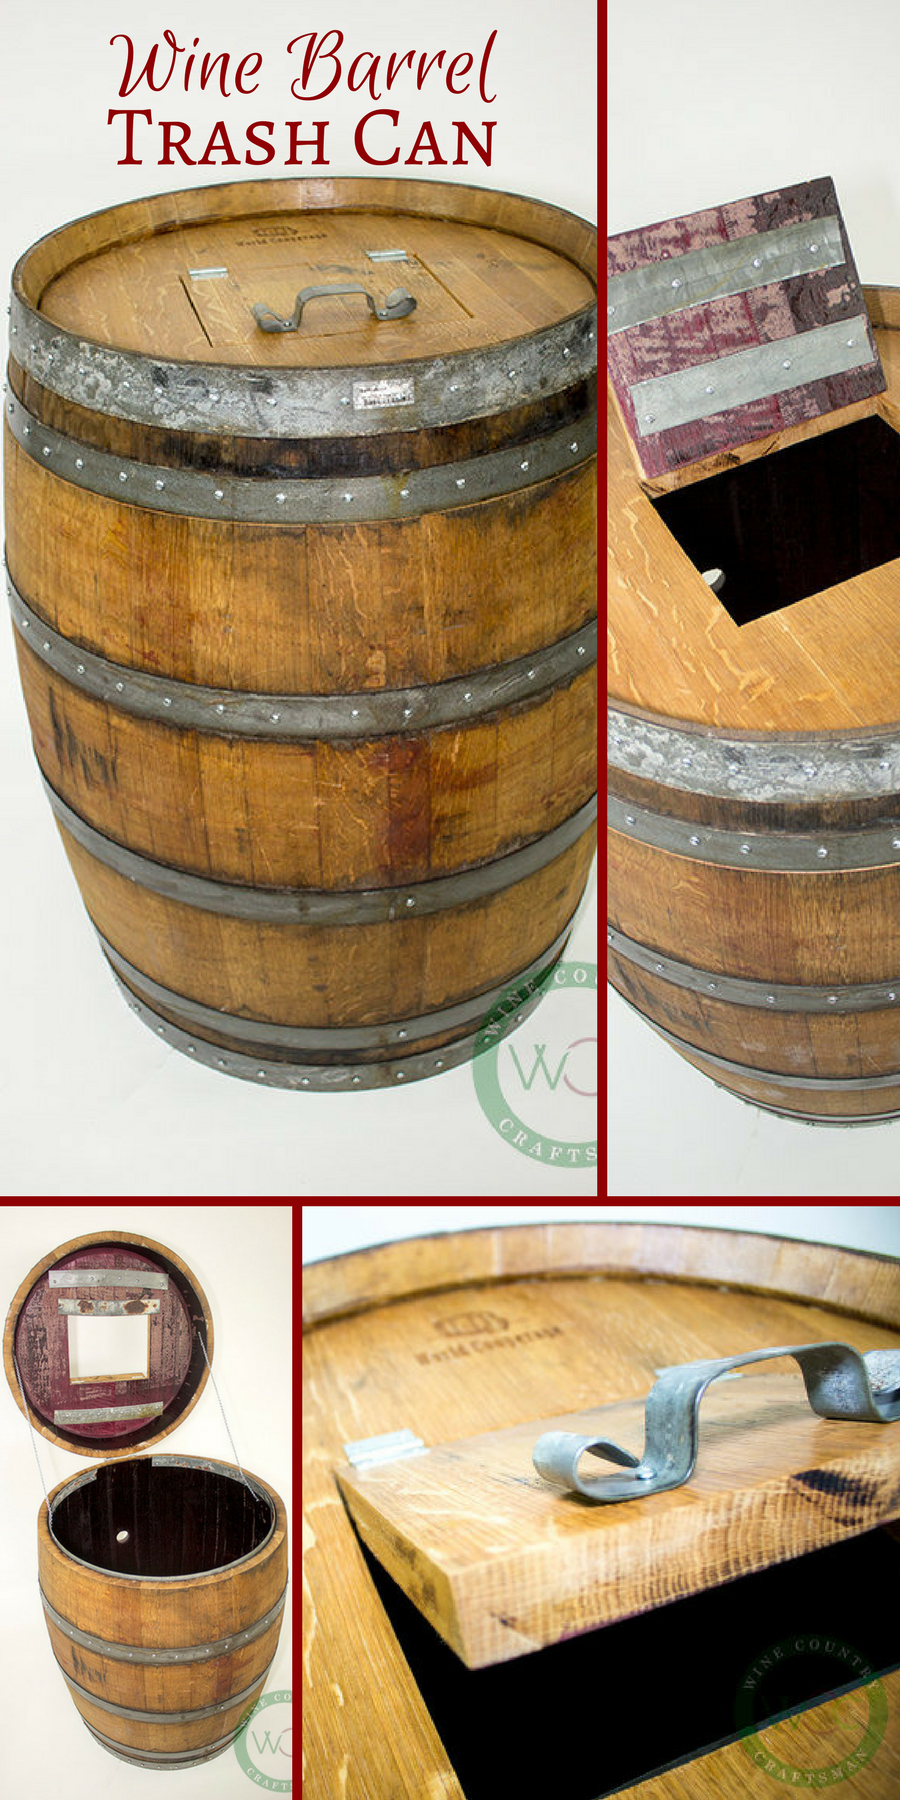 Cute Trash Cans Made Entirely From A Retired Wine Barrel So Unique Rustic Ad Wine Barrel Barrel Projects Rec Room Decor